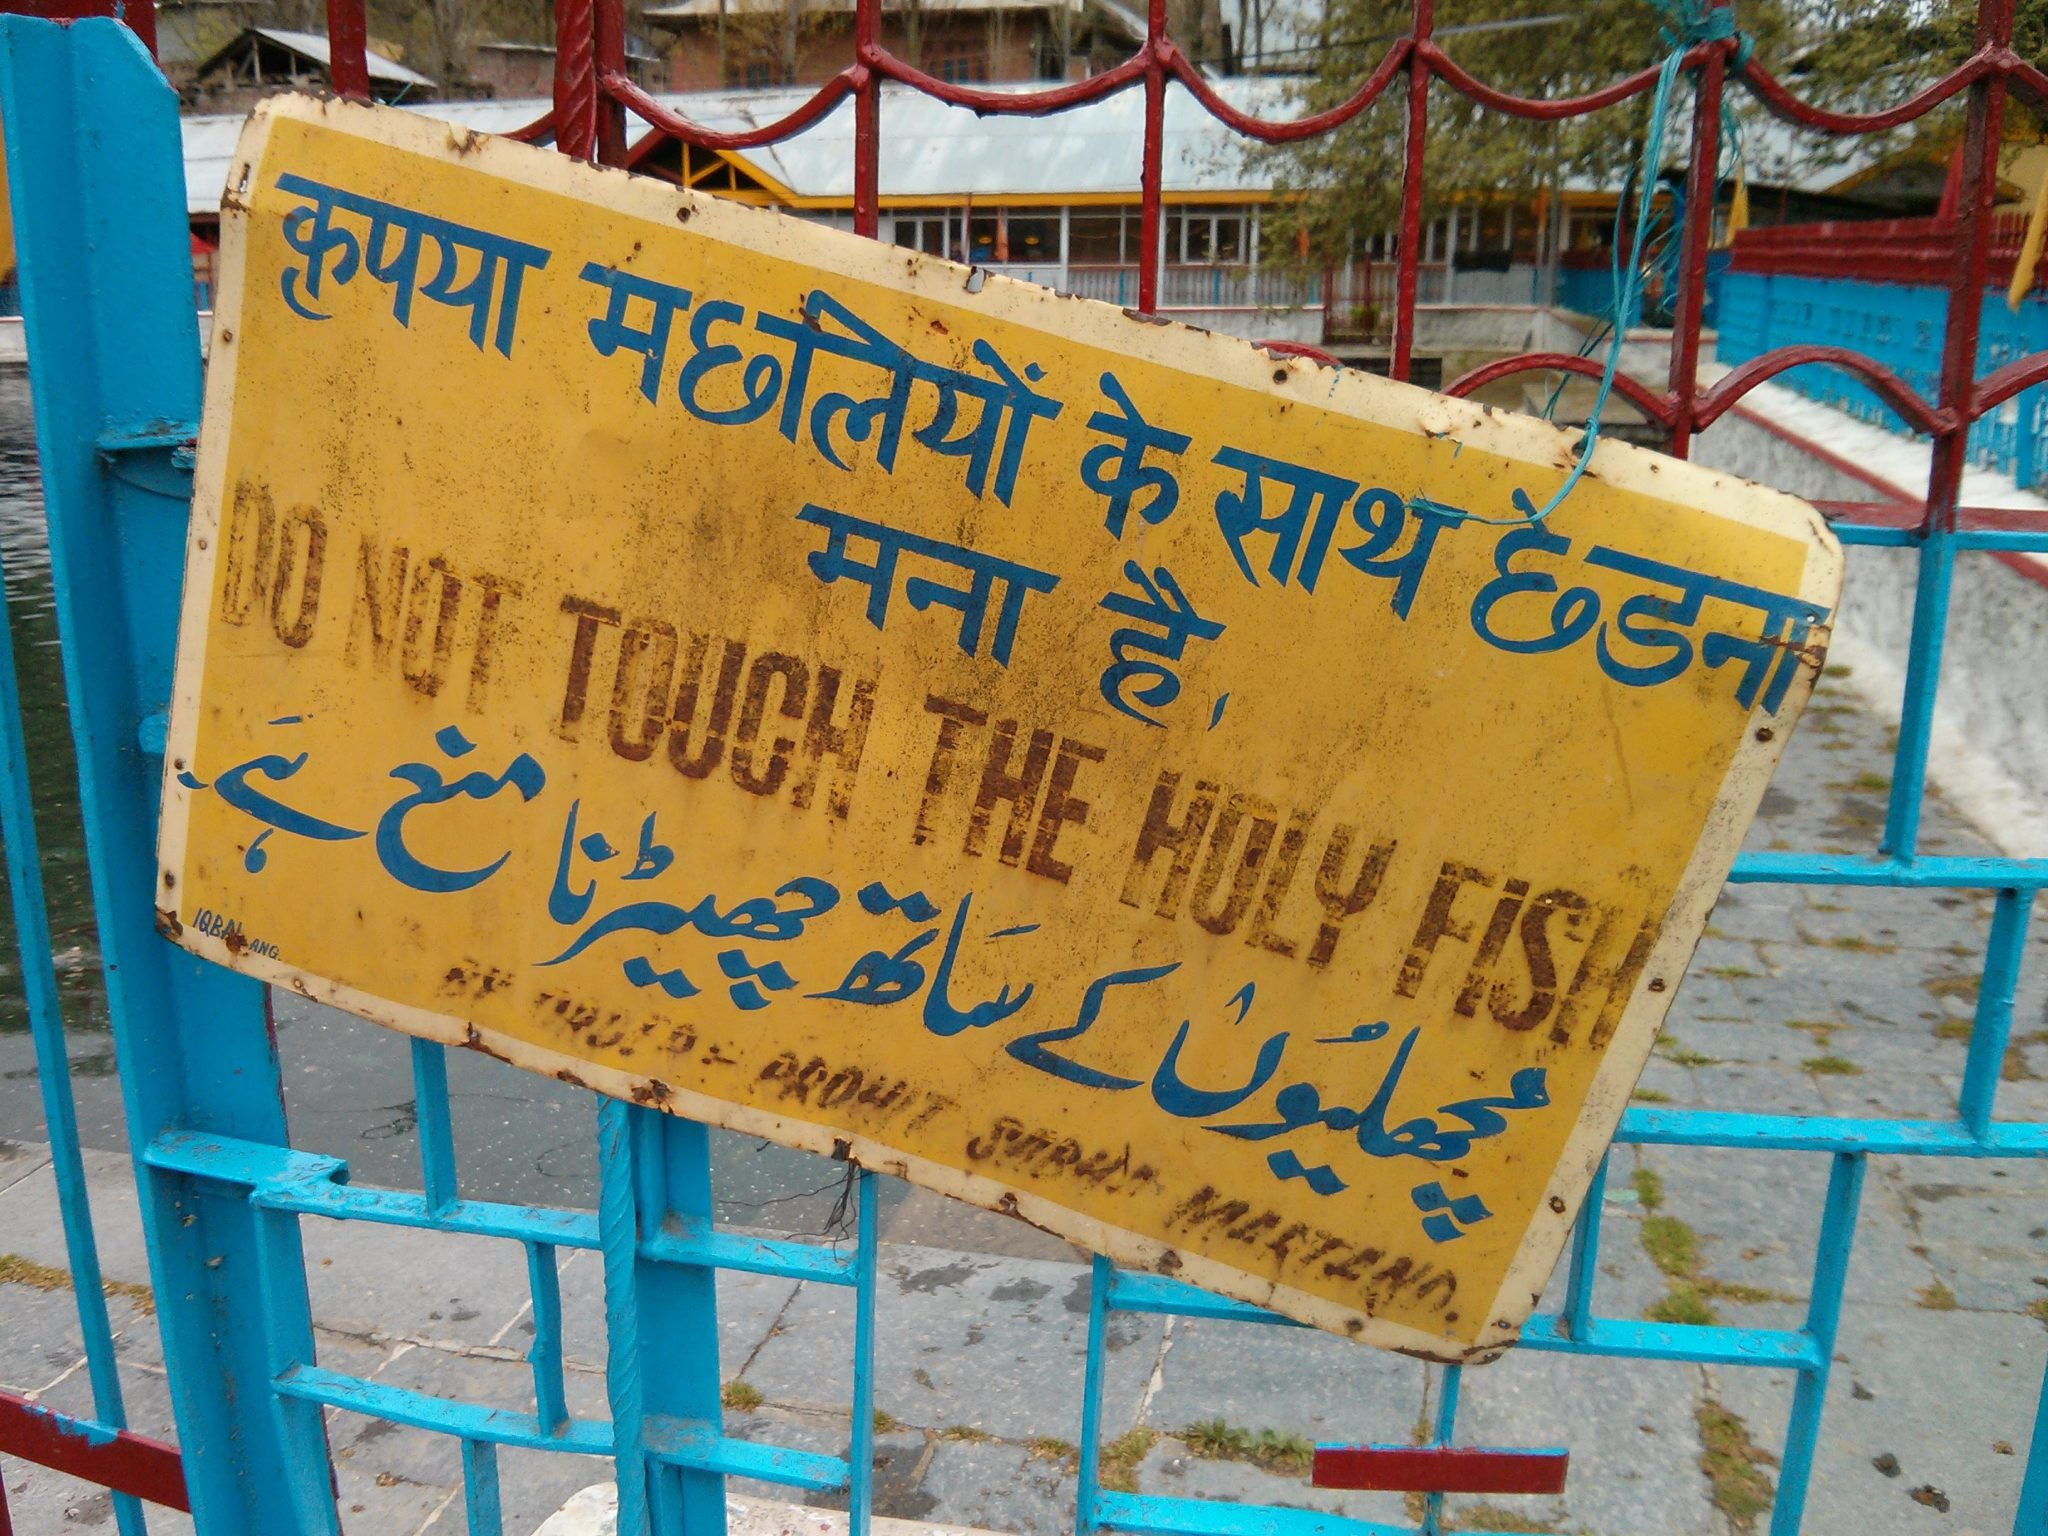 Full photo: 'Do Not Touch The Holy Fish' sign. (Kashmir, India).